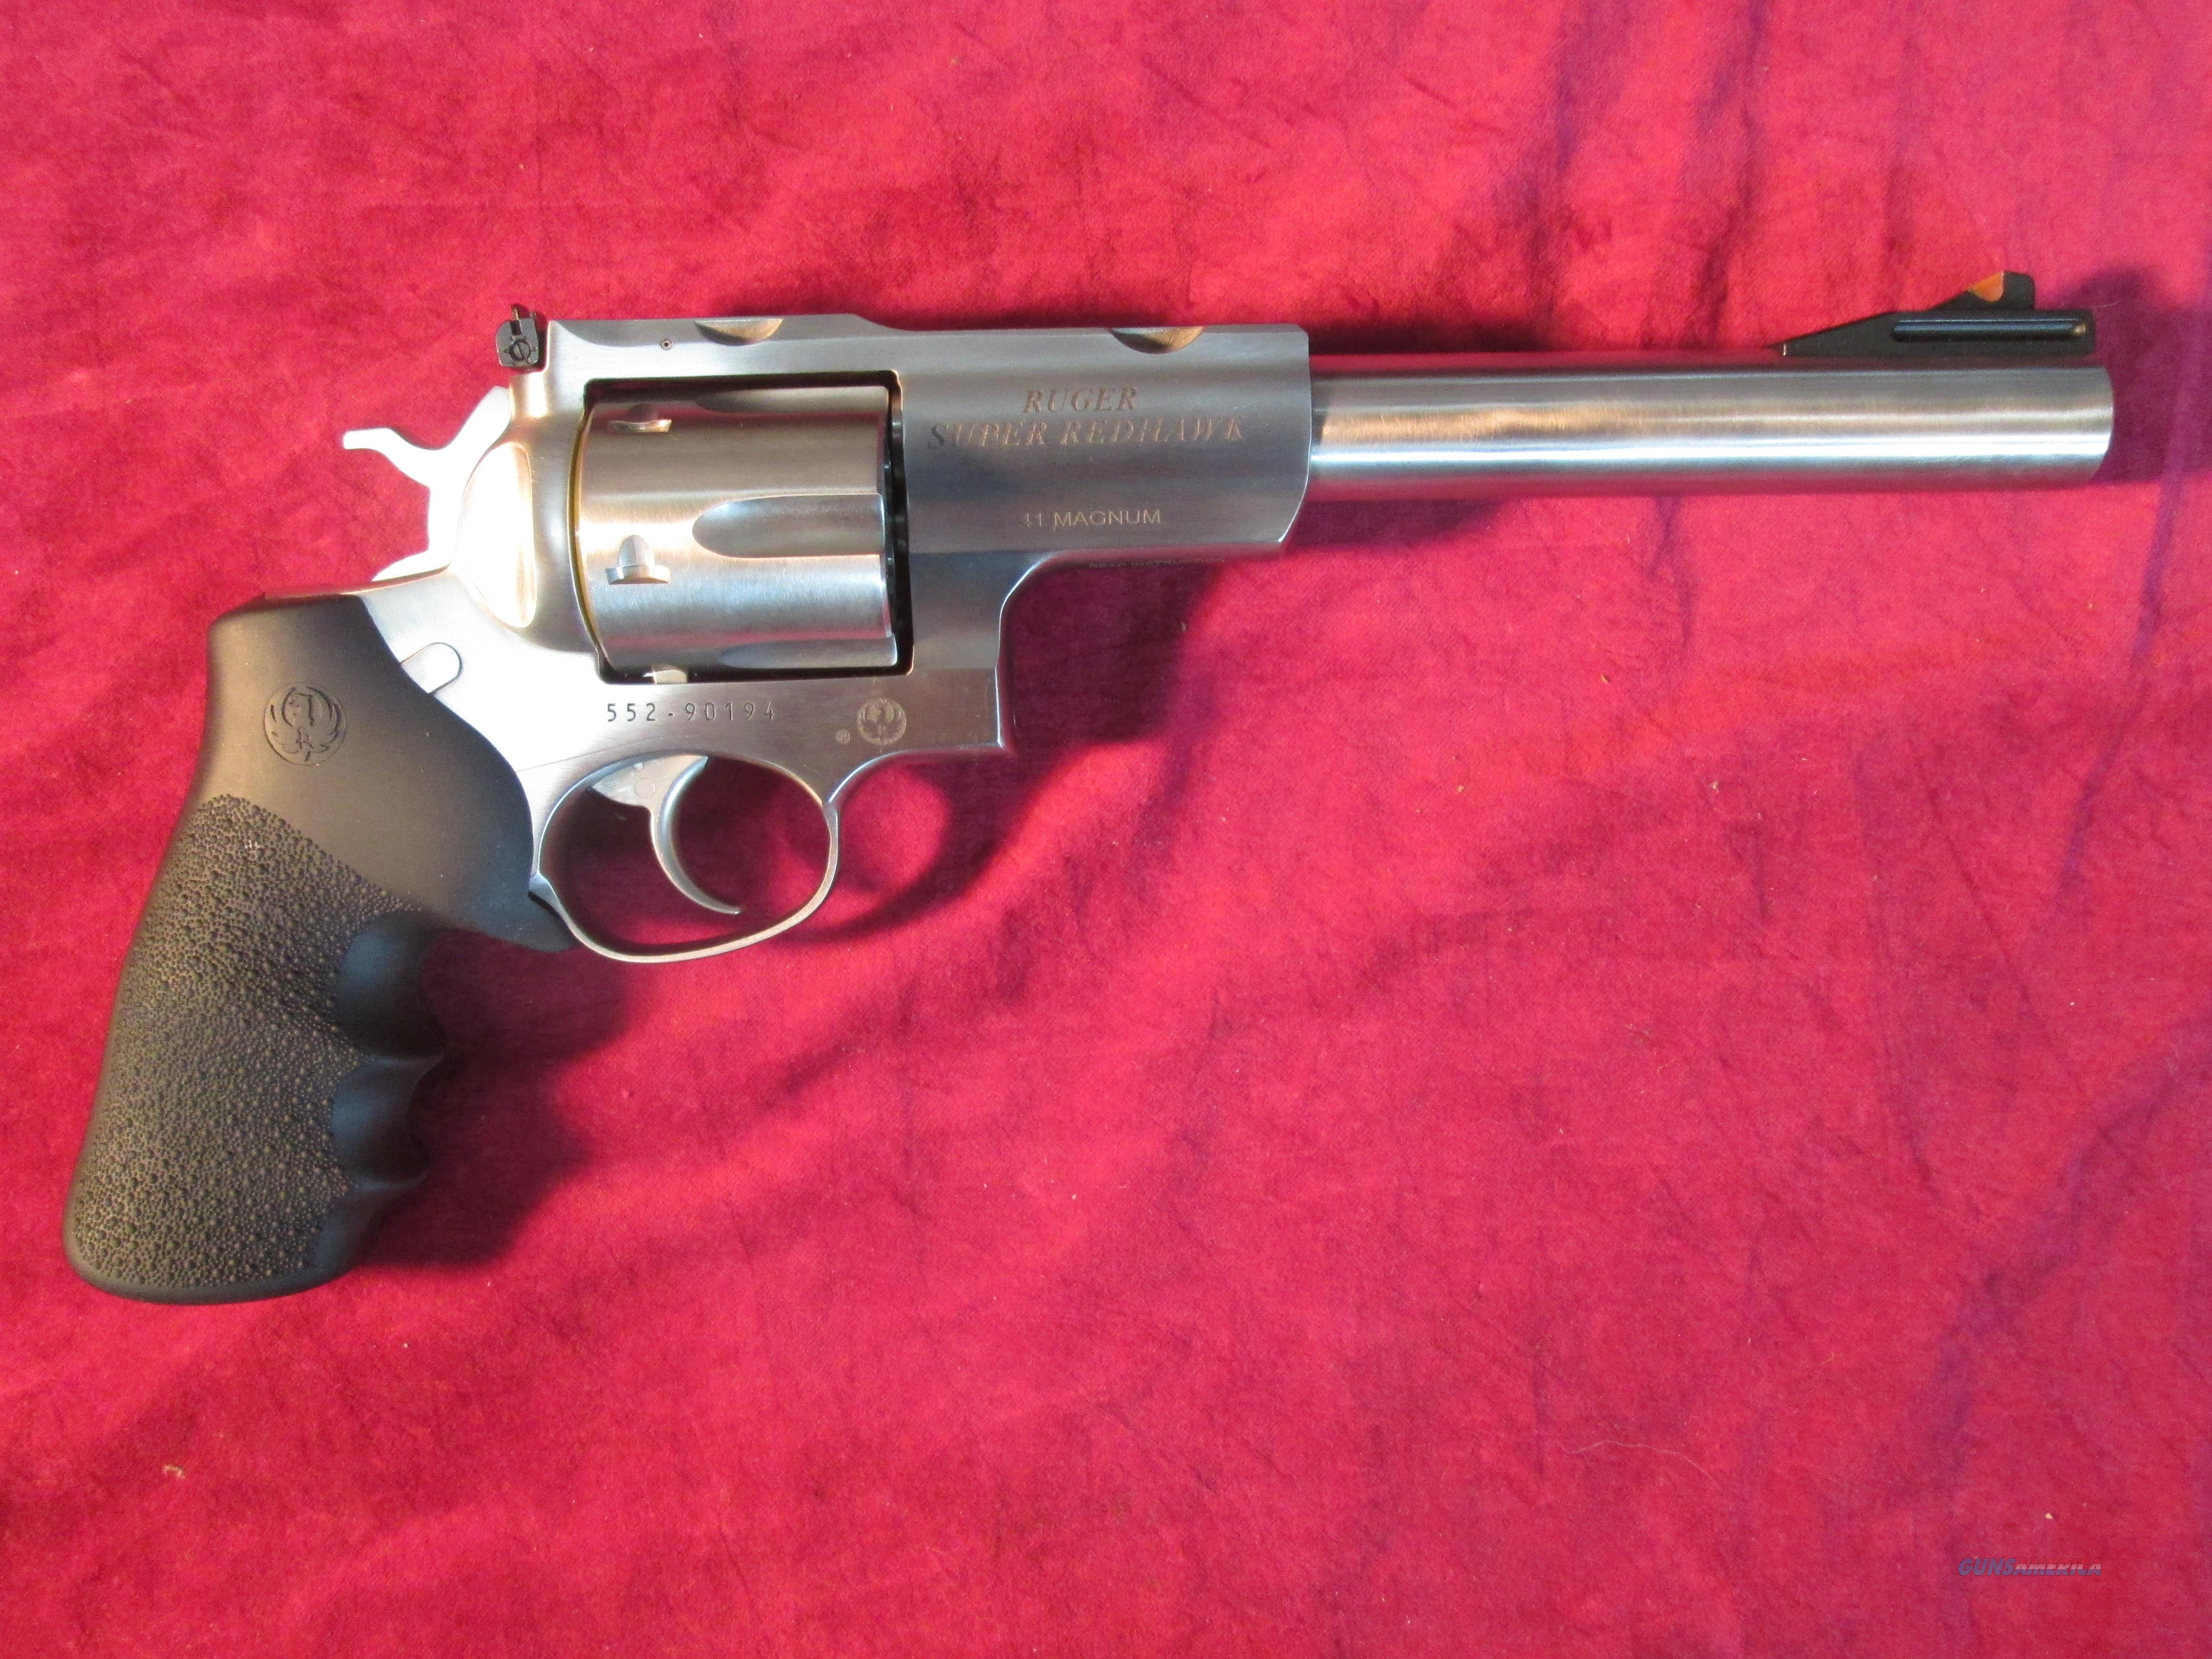 "RUGER SUPER REDHAWK 7.5"" 41 MAGNUM STAINLESS WITH RINGS NEW  (05521)   Guns > Pistols > Ruger Double Action Revolver > Redhawk Type"